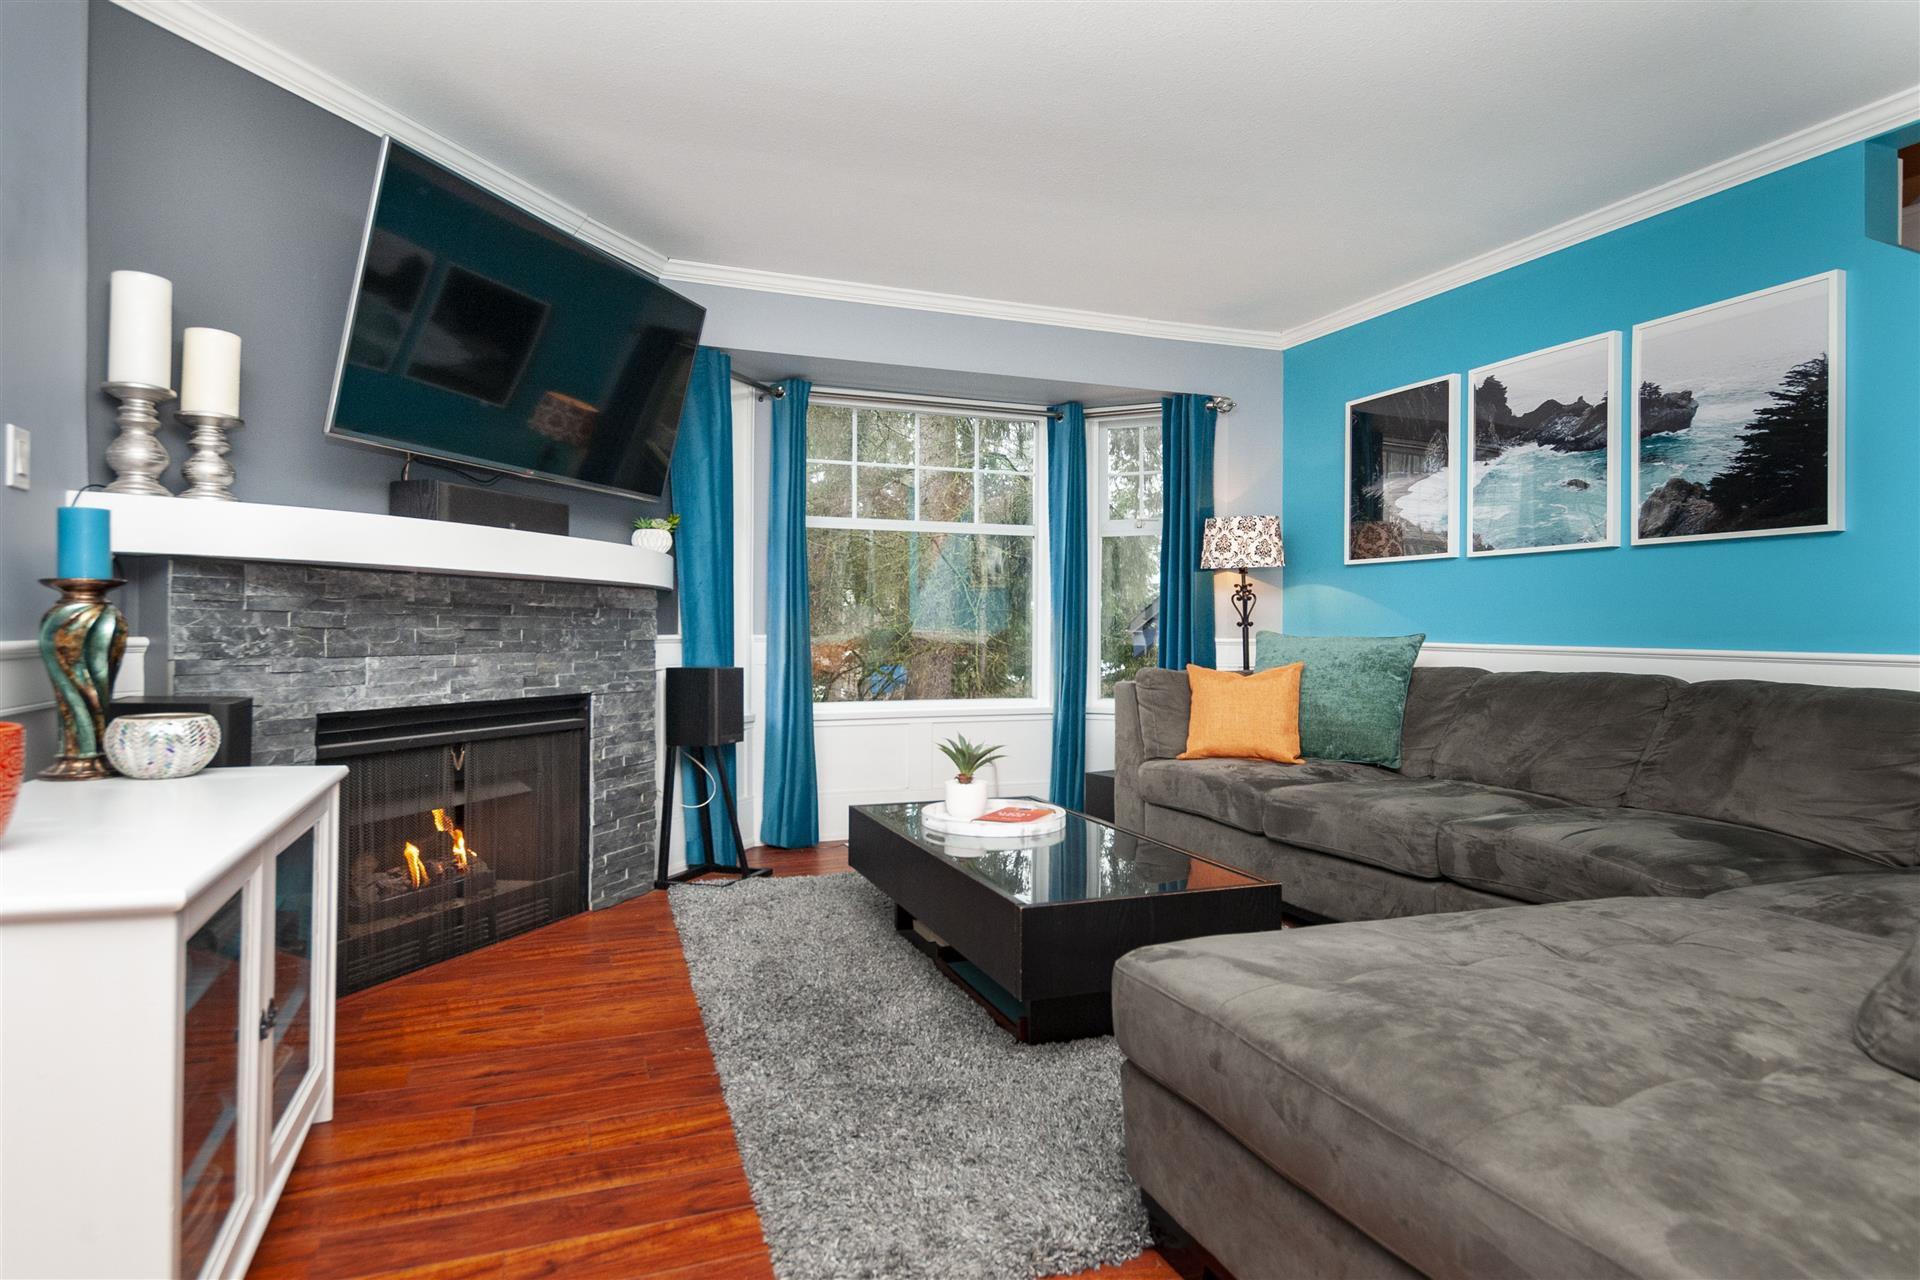 Main Photo: 18-2525 Shaftsbury Place in Port Coquitlam: Woodland Acres PQ Townhouse for sale : MLS®# R2341763